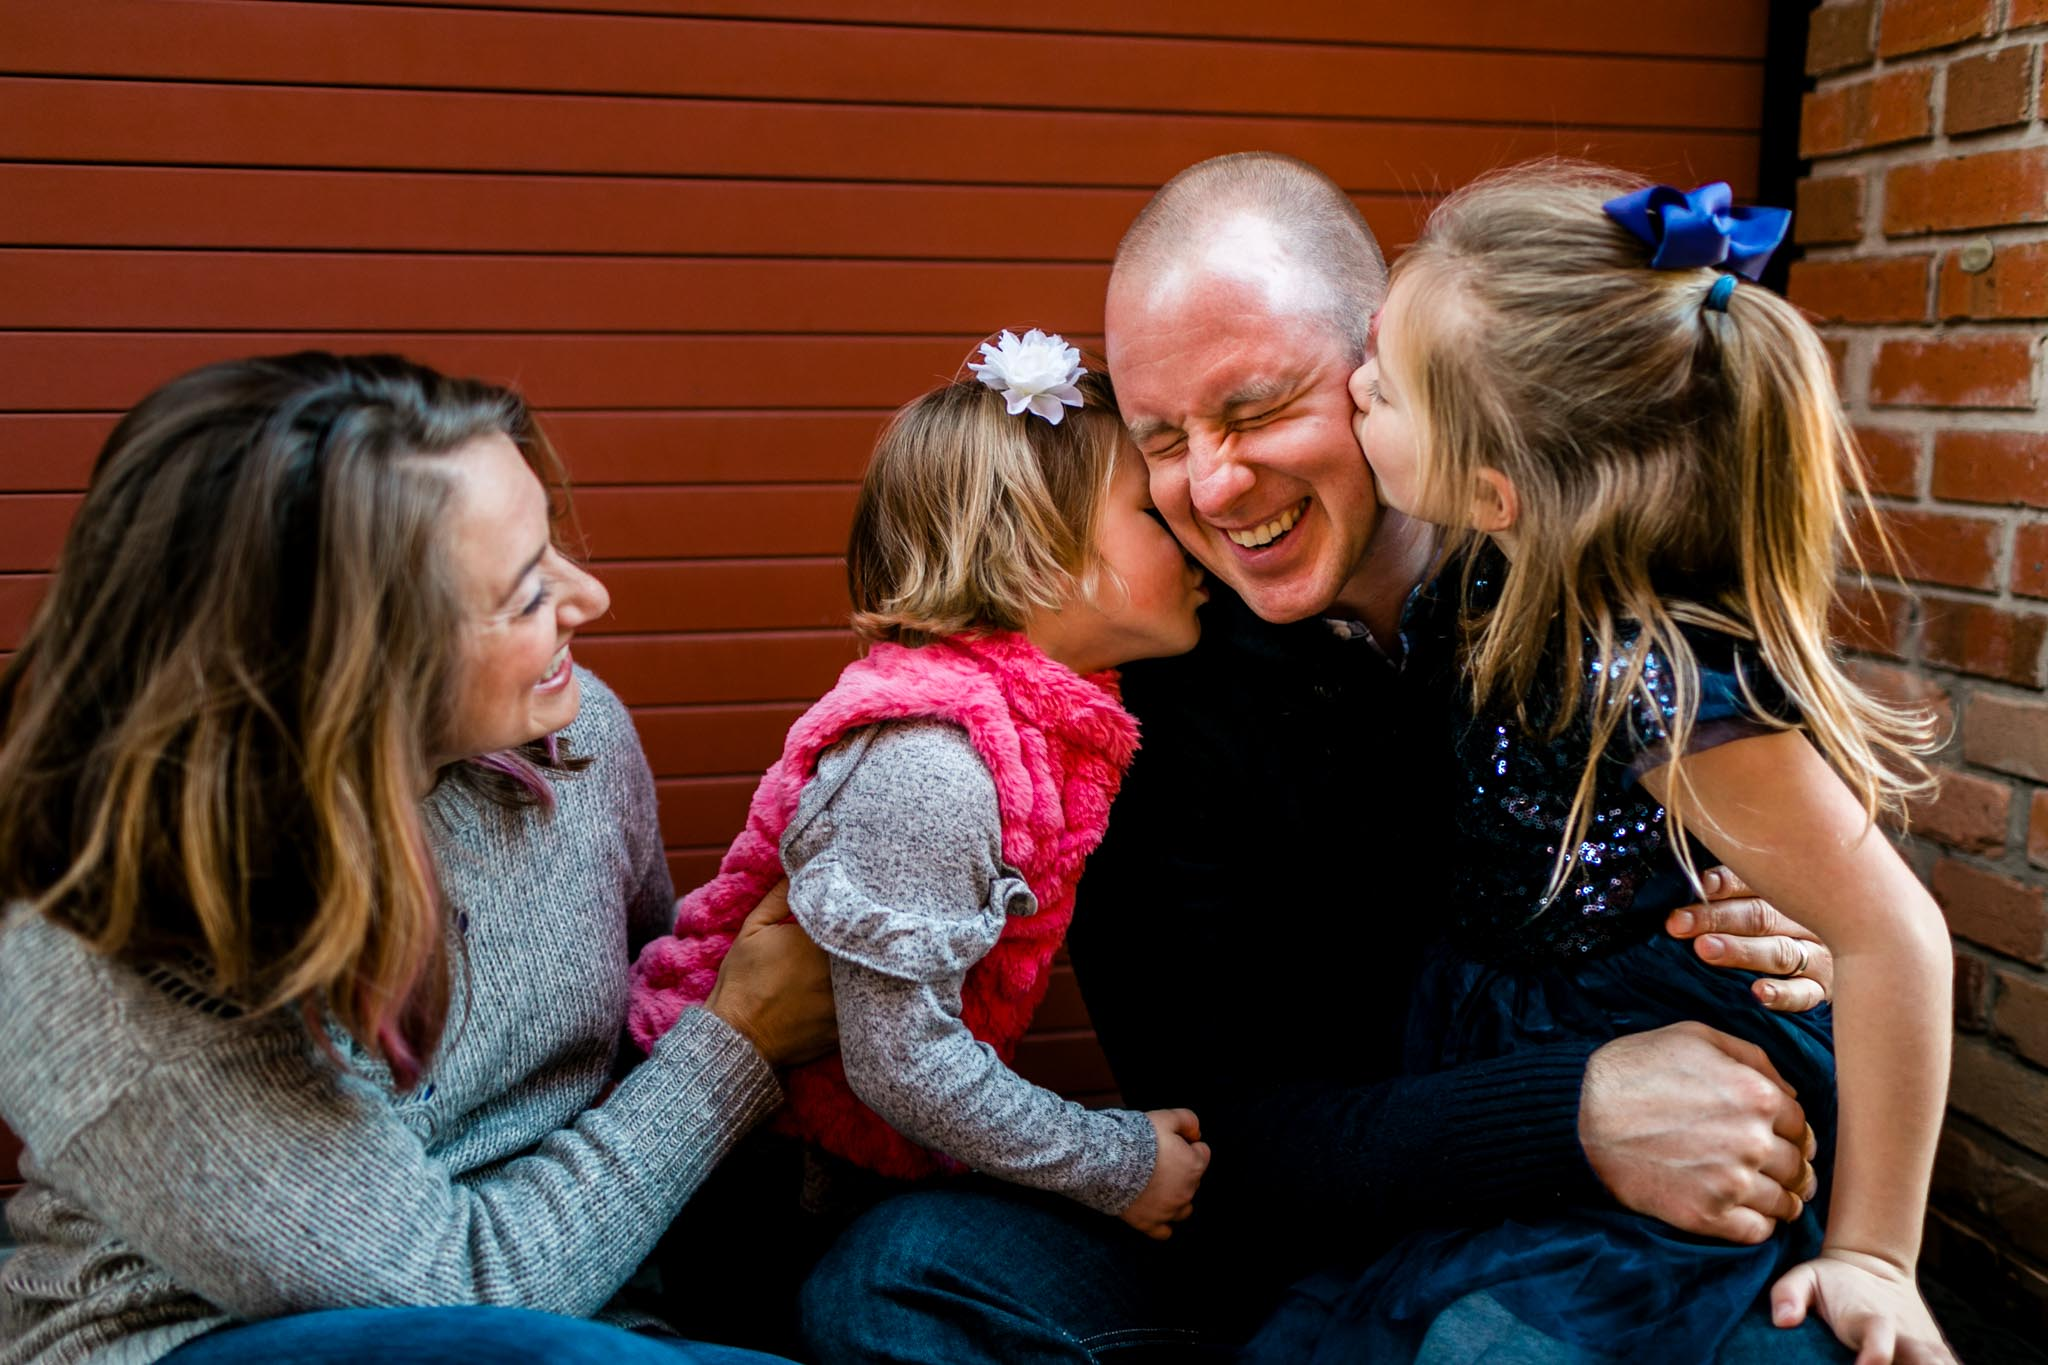 Daughters kissing dad on the cheek | American Tobacco Campus | Durham Family Photography | By G. Lin Photography